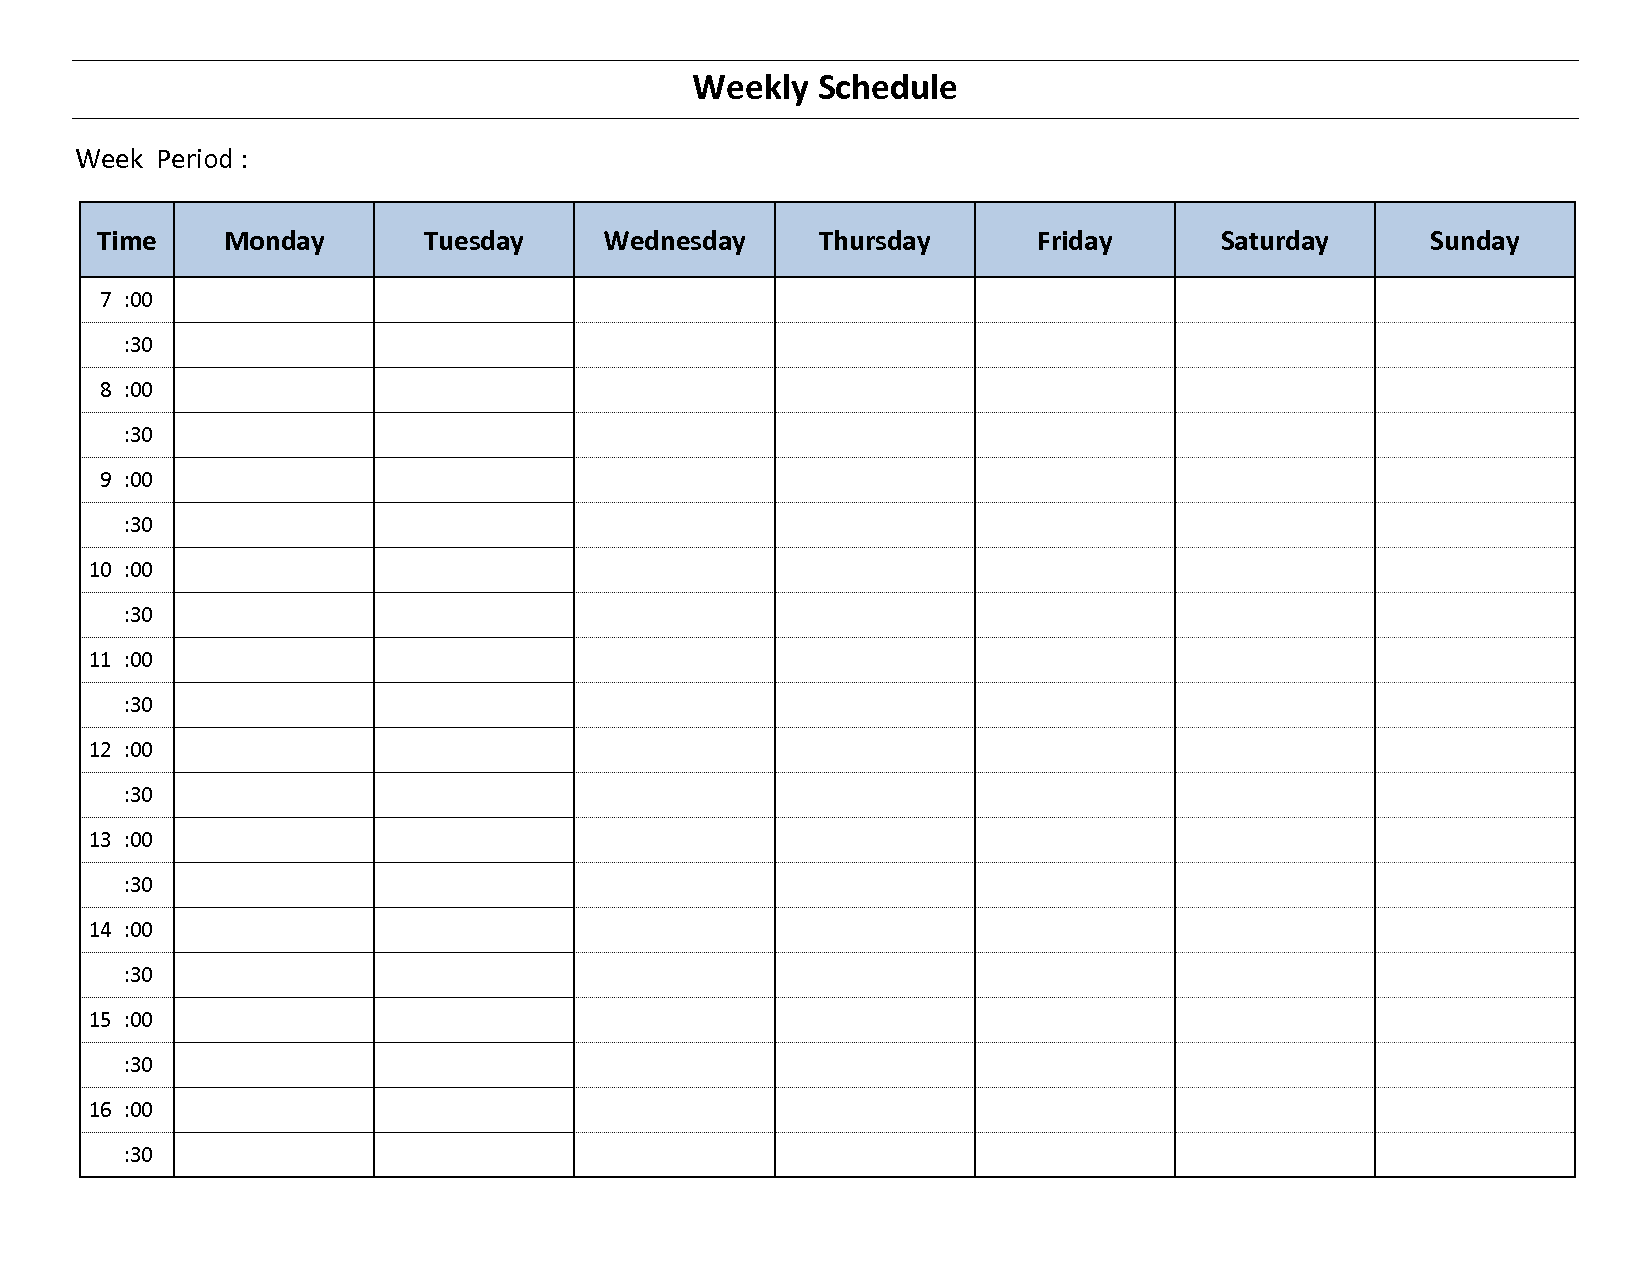 Construction Schedule Template Excel Free Download  Free Daily Calendar Template With Times